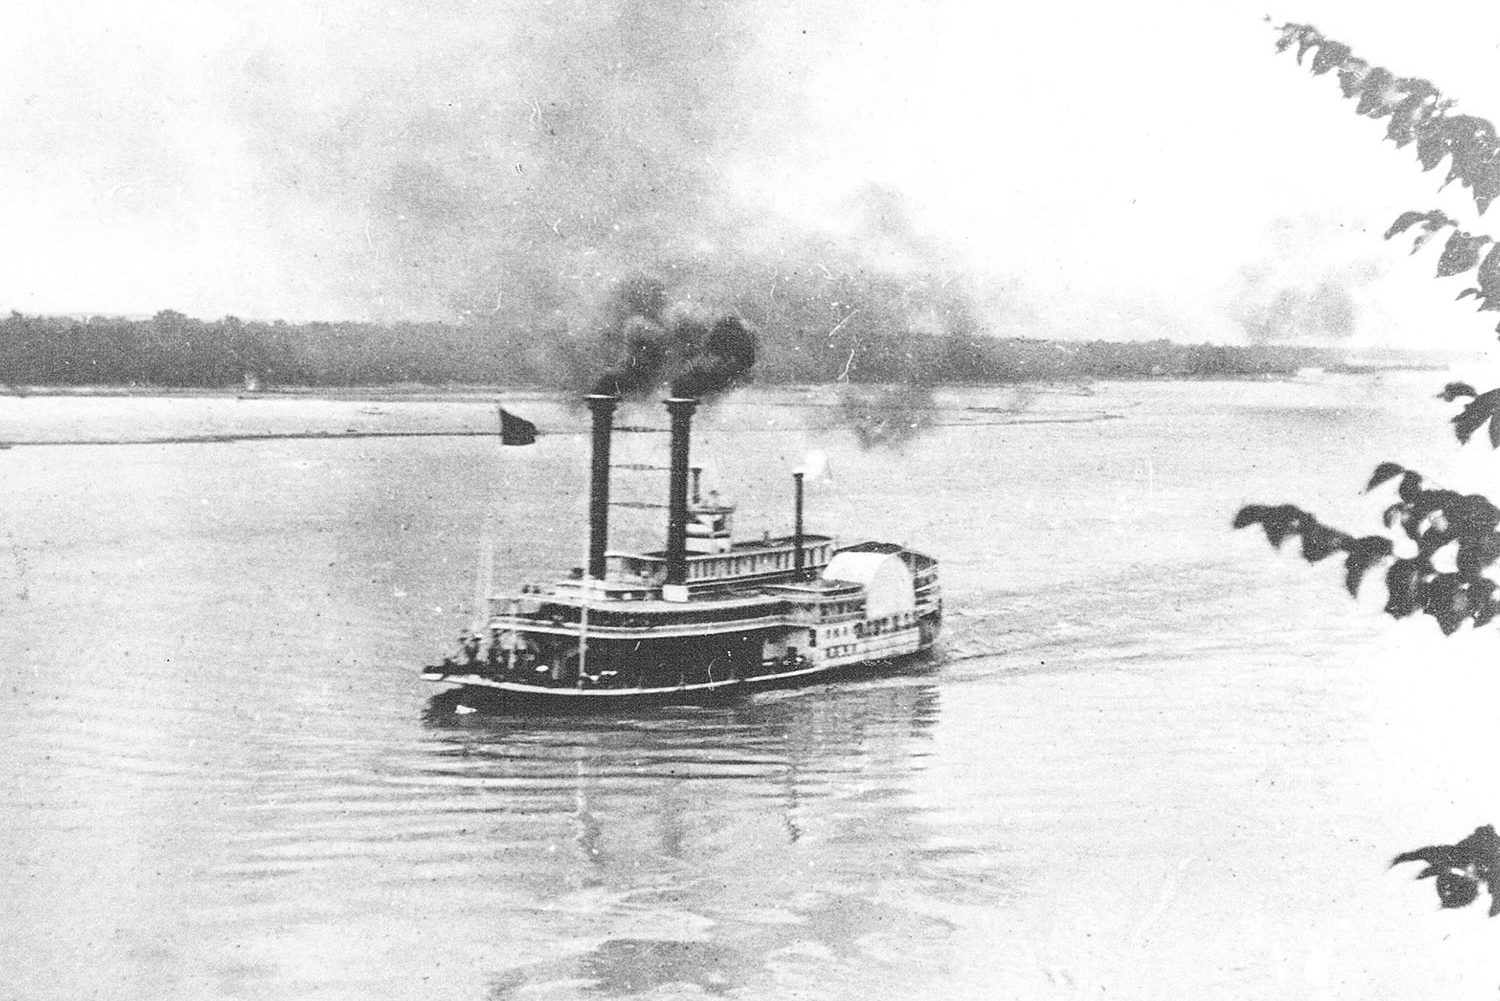 The famed steamer Rob't. E. Lee below St. Louis on the morning of July 4, 1870, nearing its victorious conclusion of the race with the Natchez. This is the only known image taken during the race. (Keith Norrington collection)